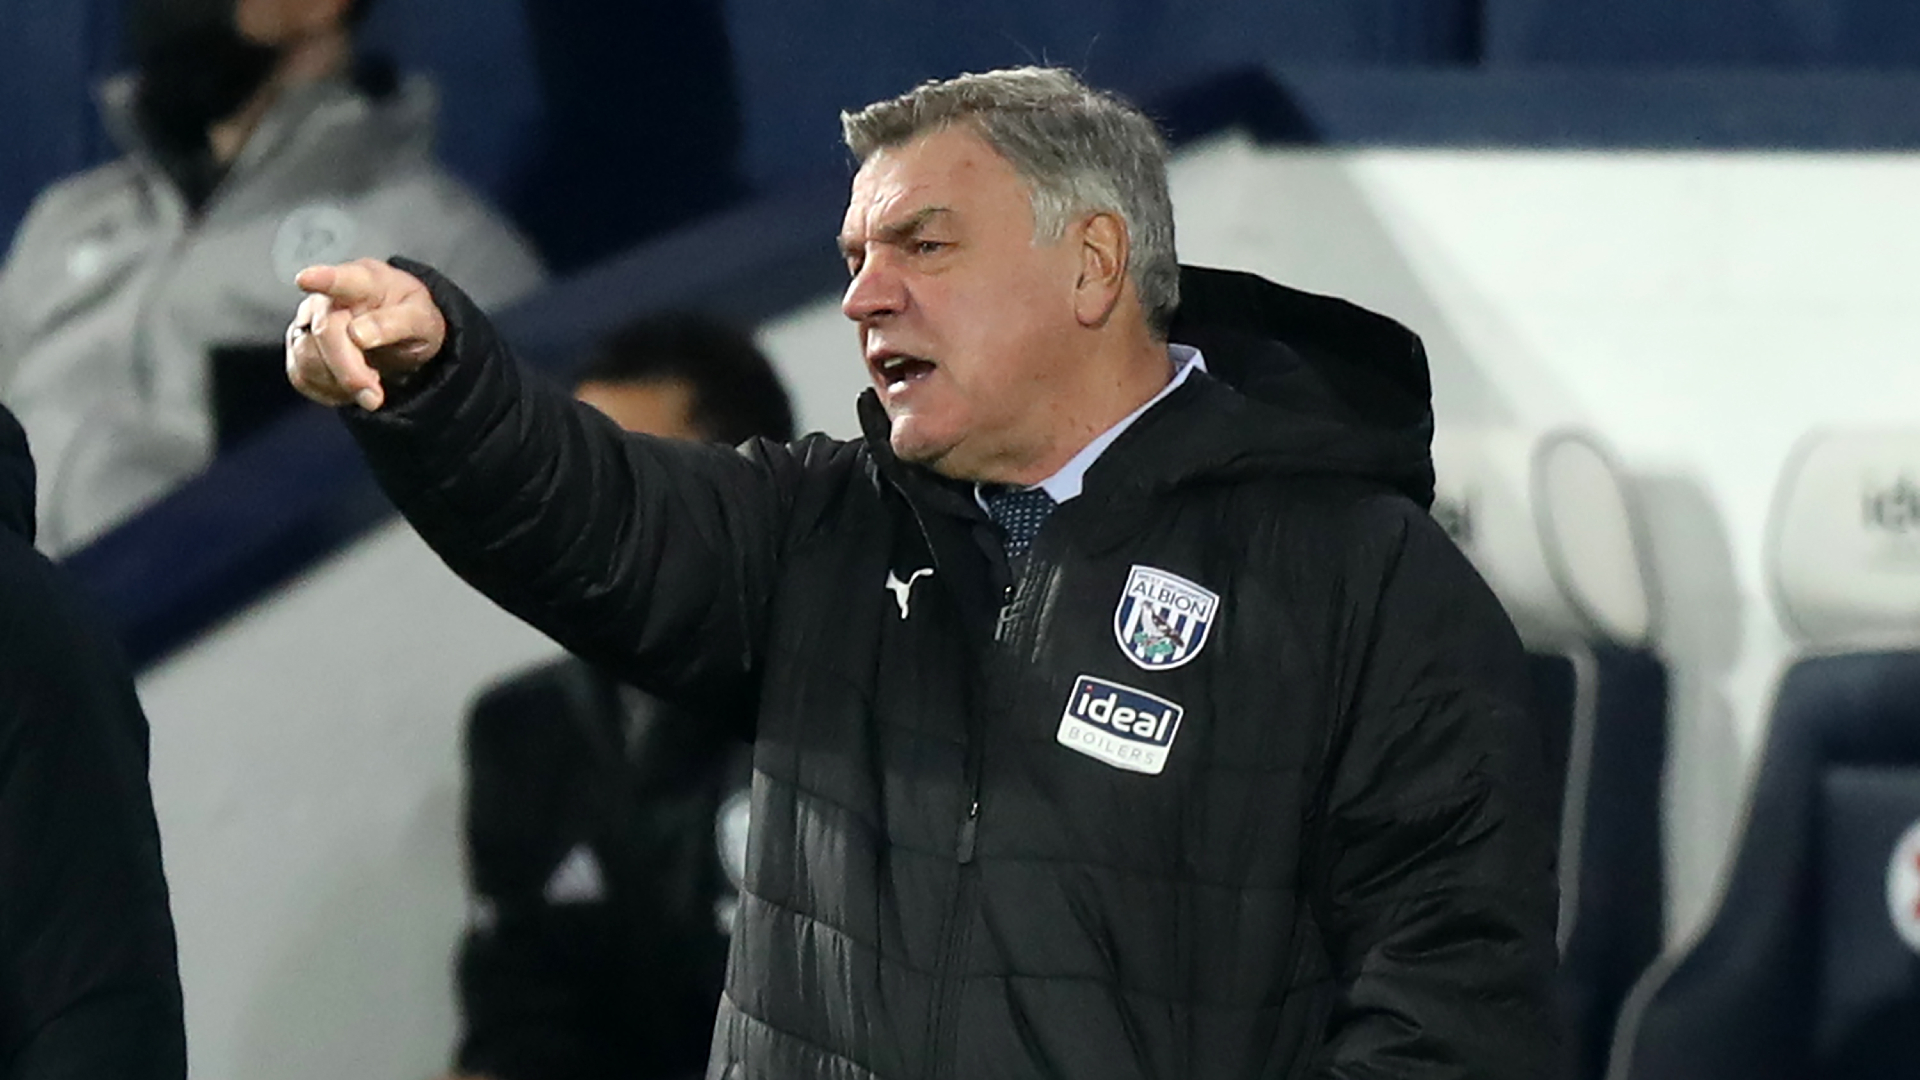 'I'm very concerned' – Allardyce calls for Premier League 'circuit break' after Covid-19 spike